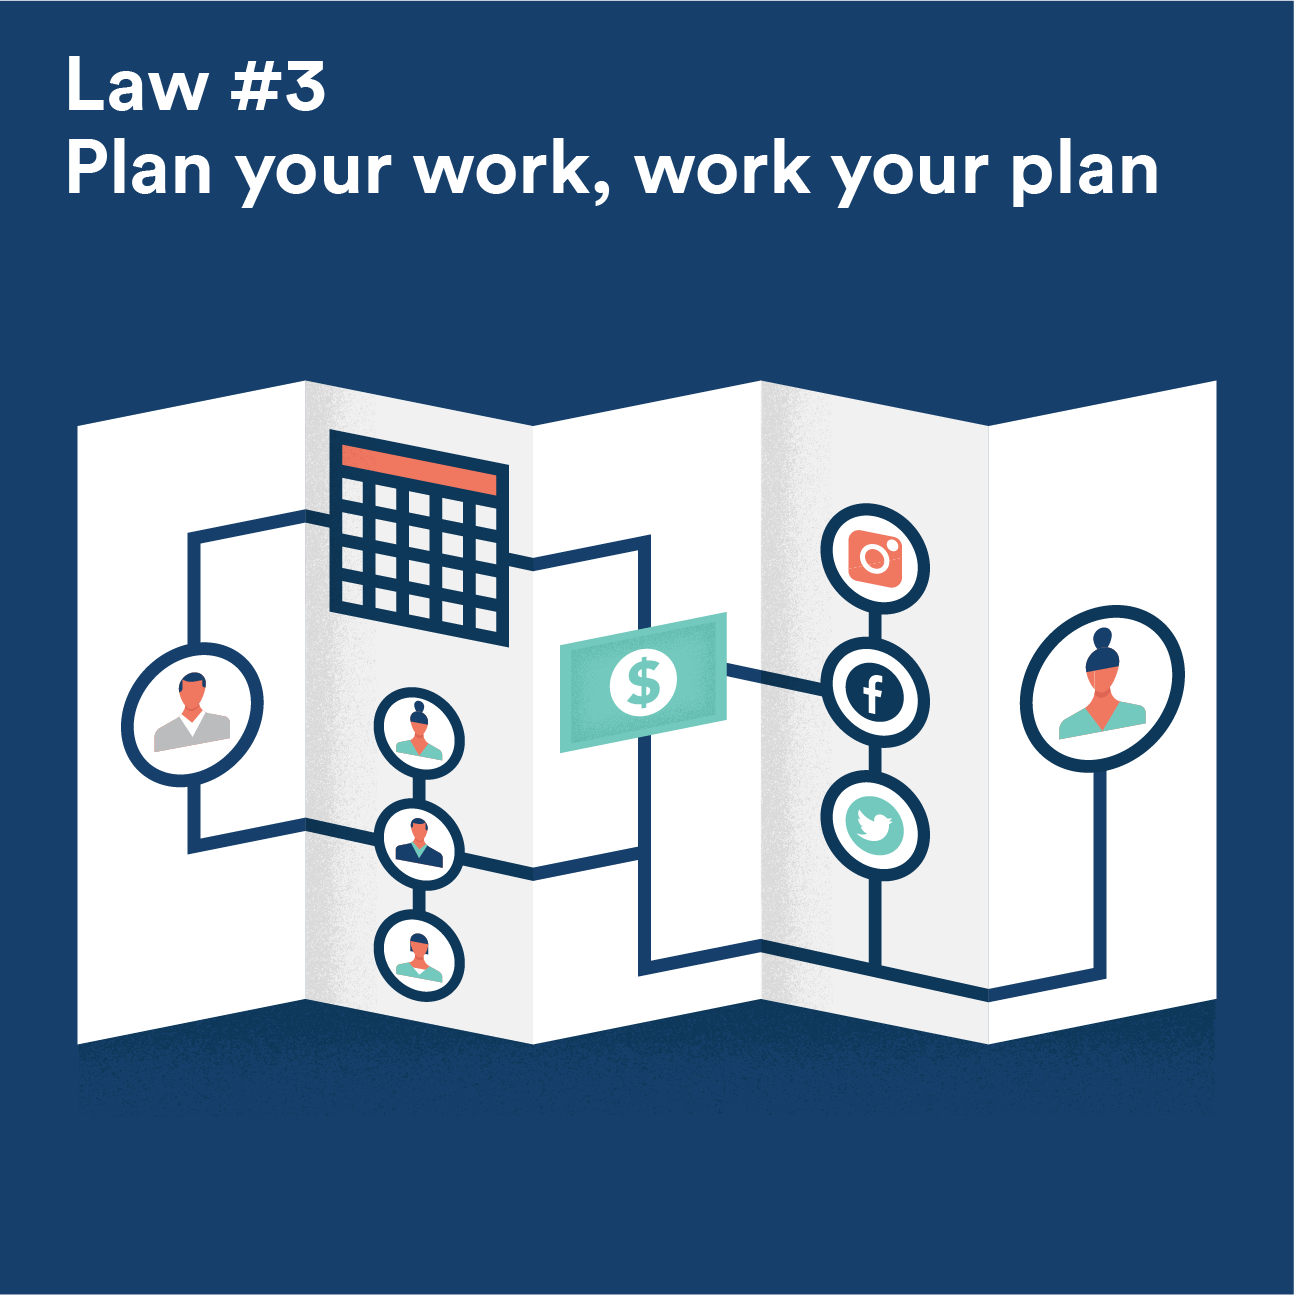 Law #3 - Plan your work, work your plan